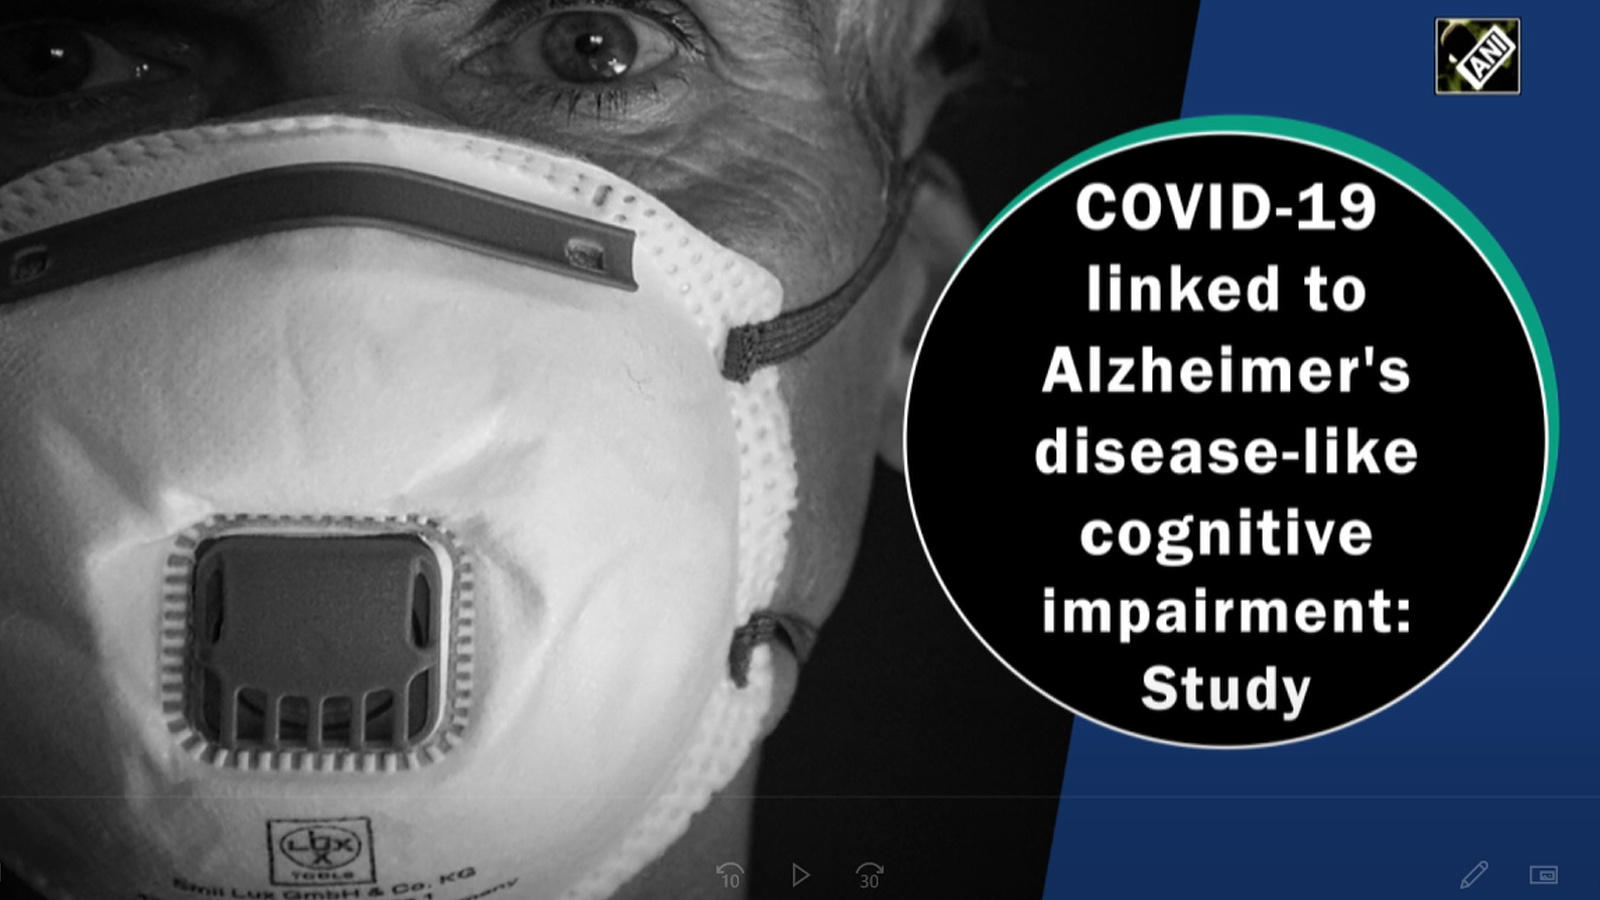 covid-19-linked-to-alzheimers-disease-like-cognitive-impairment-study